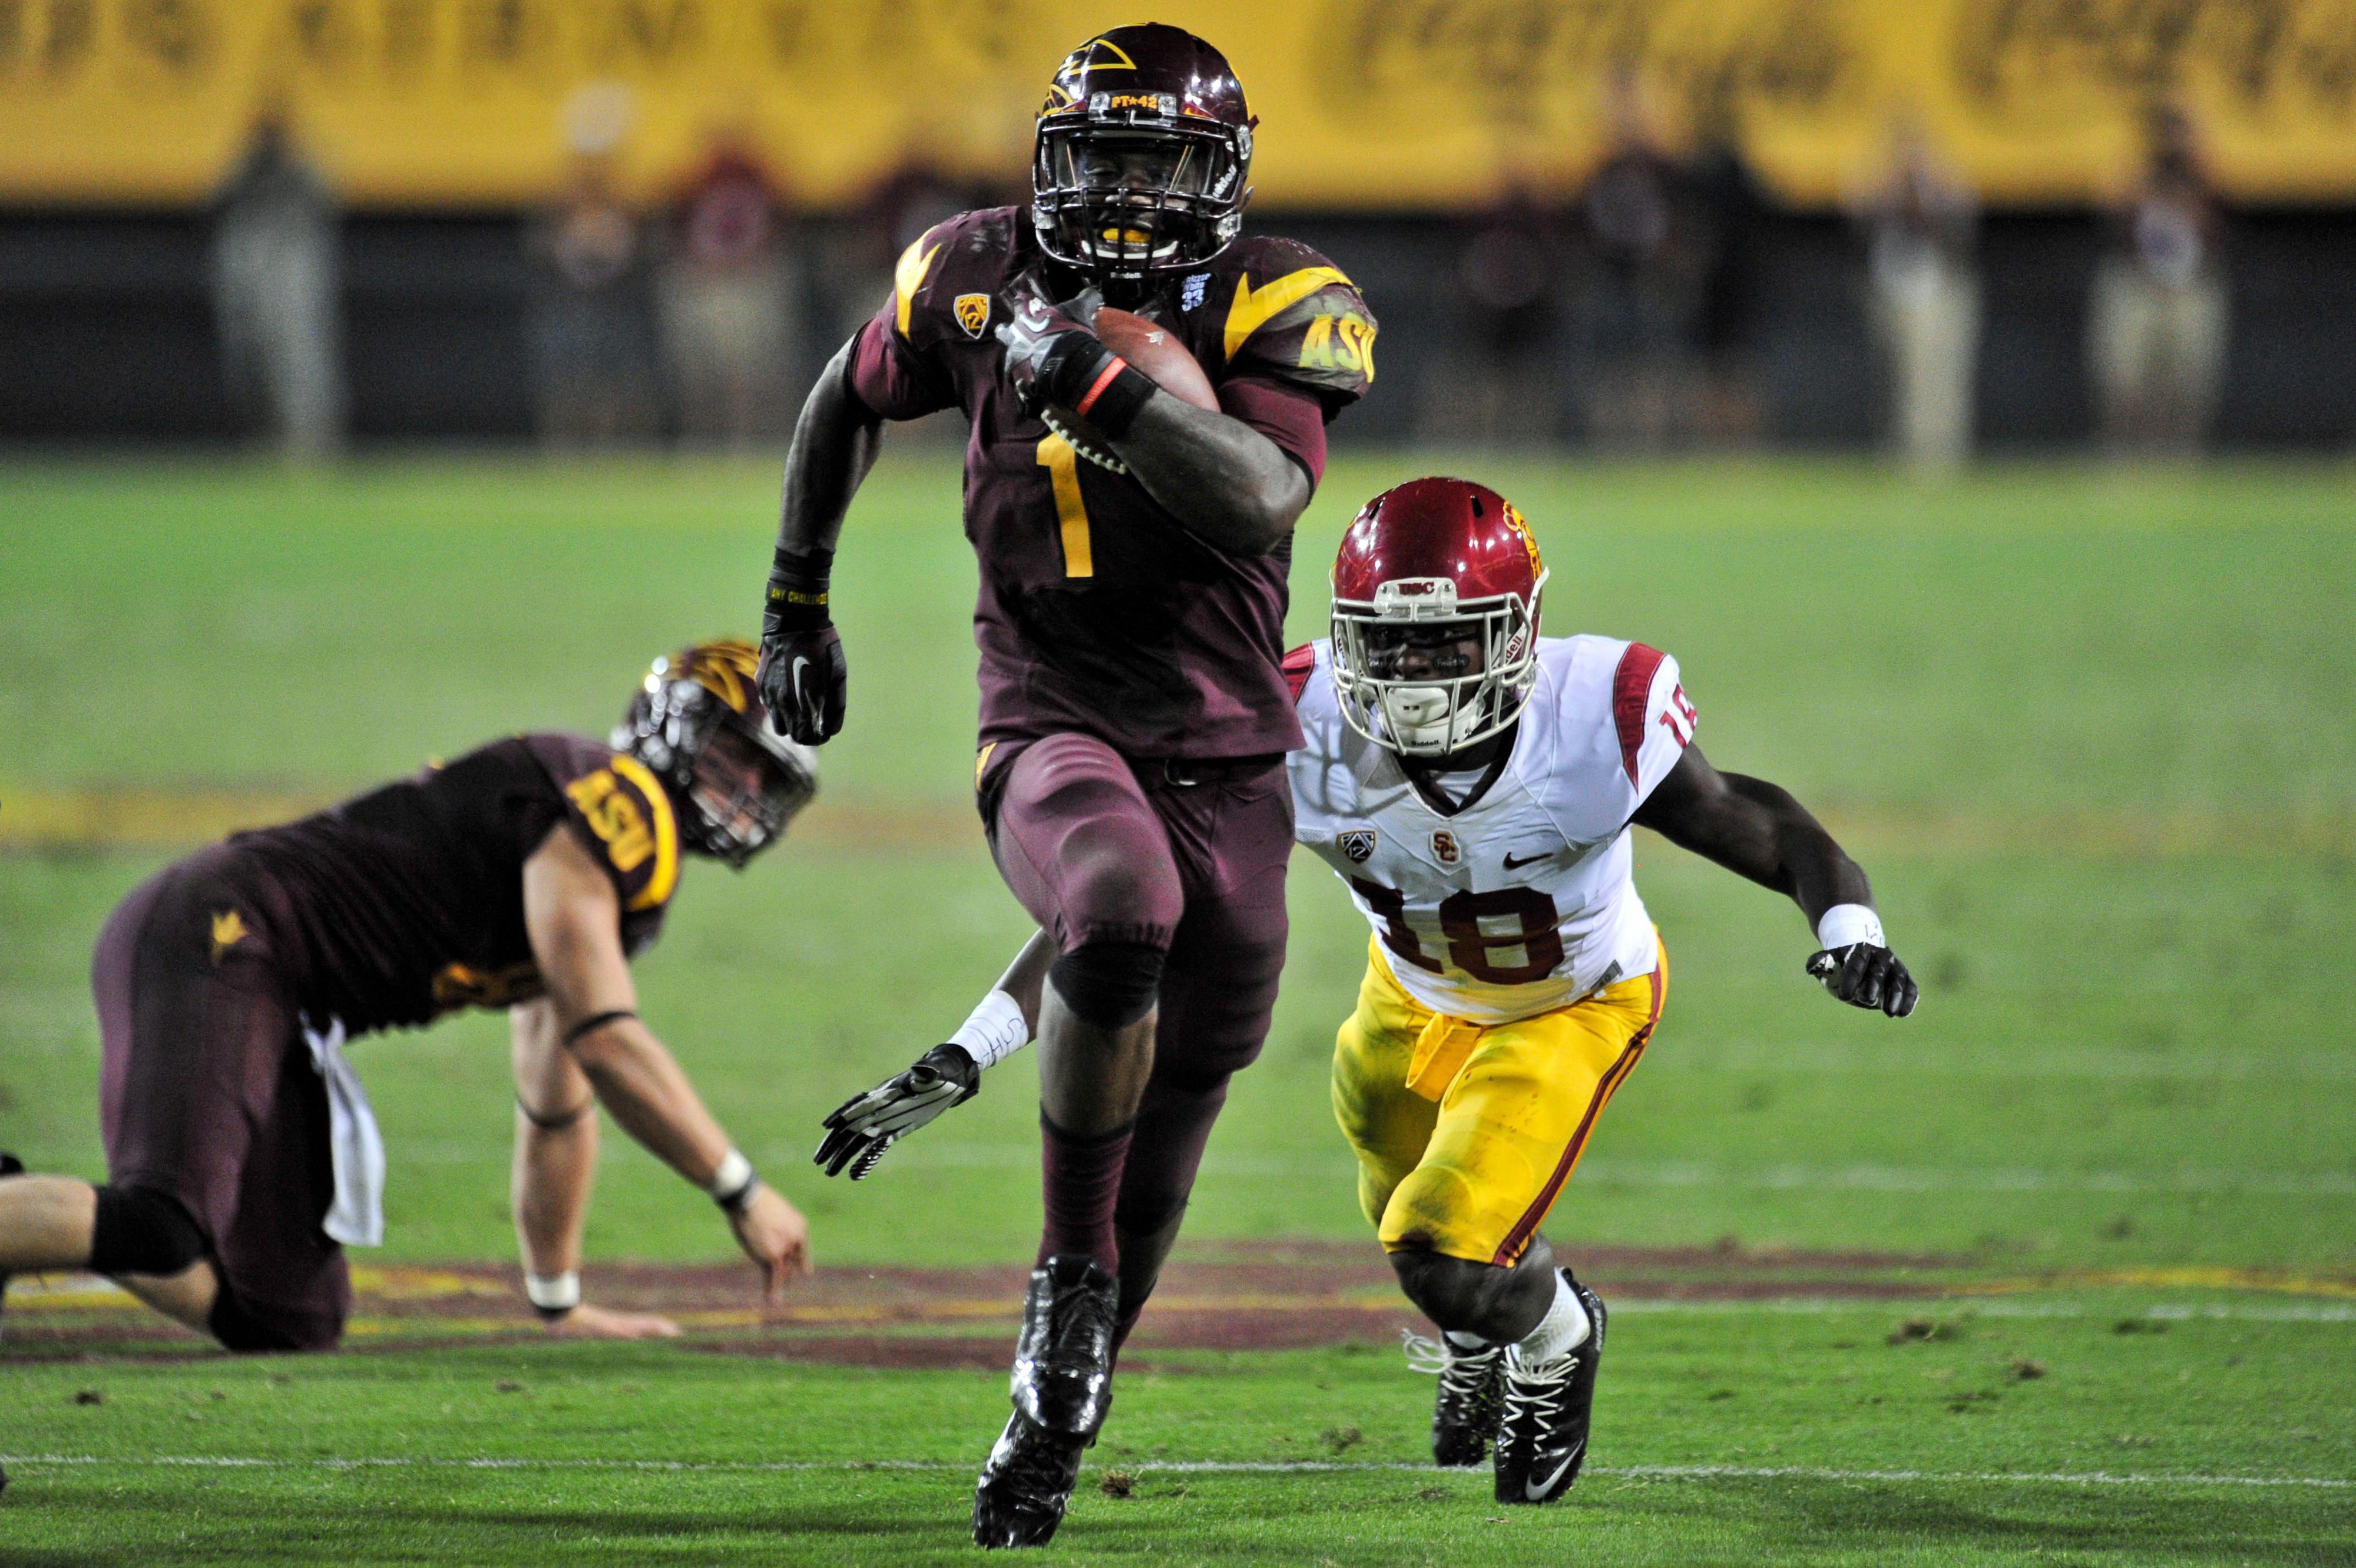 Marion Grice had 99 total yards and four touchdowns Saturday night against the Trojans.